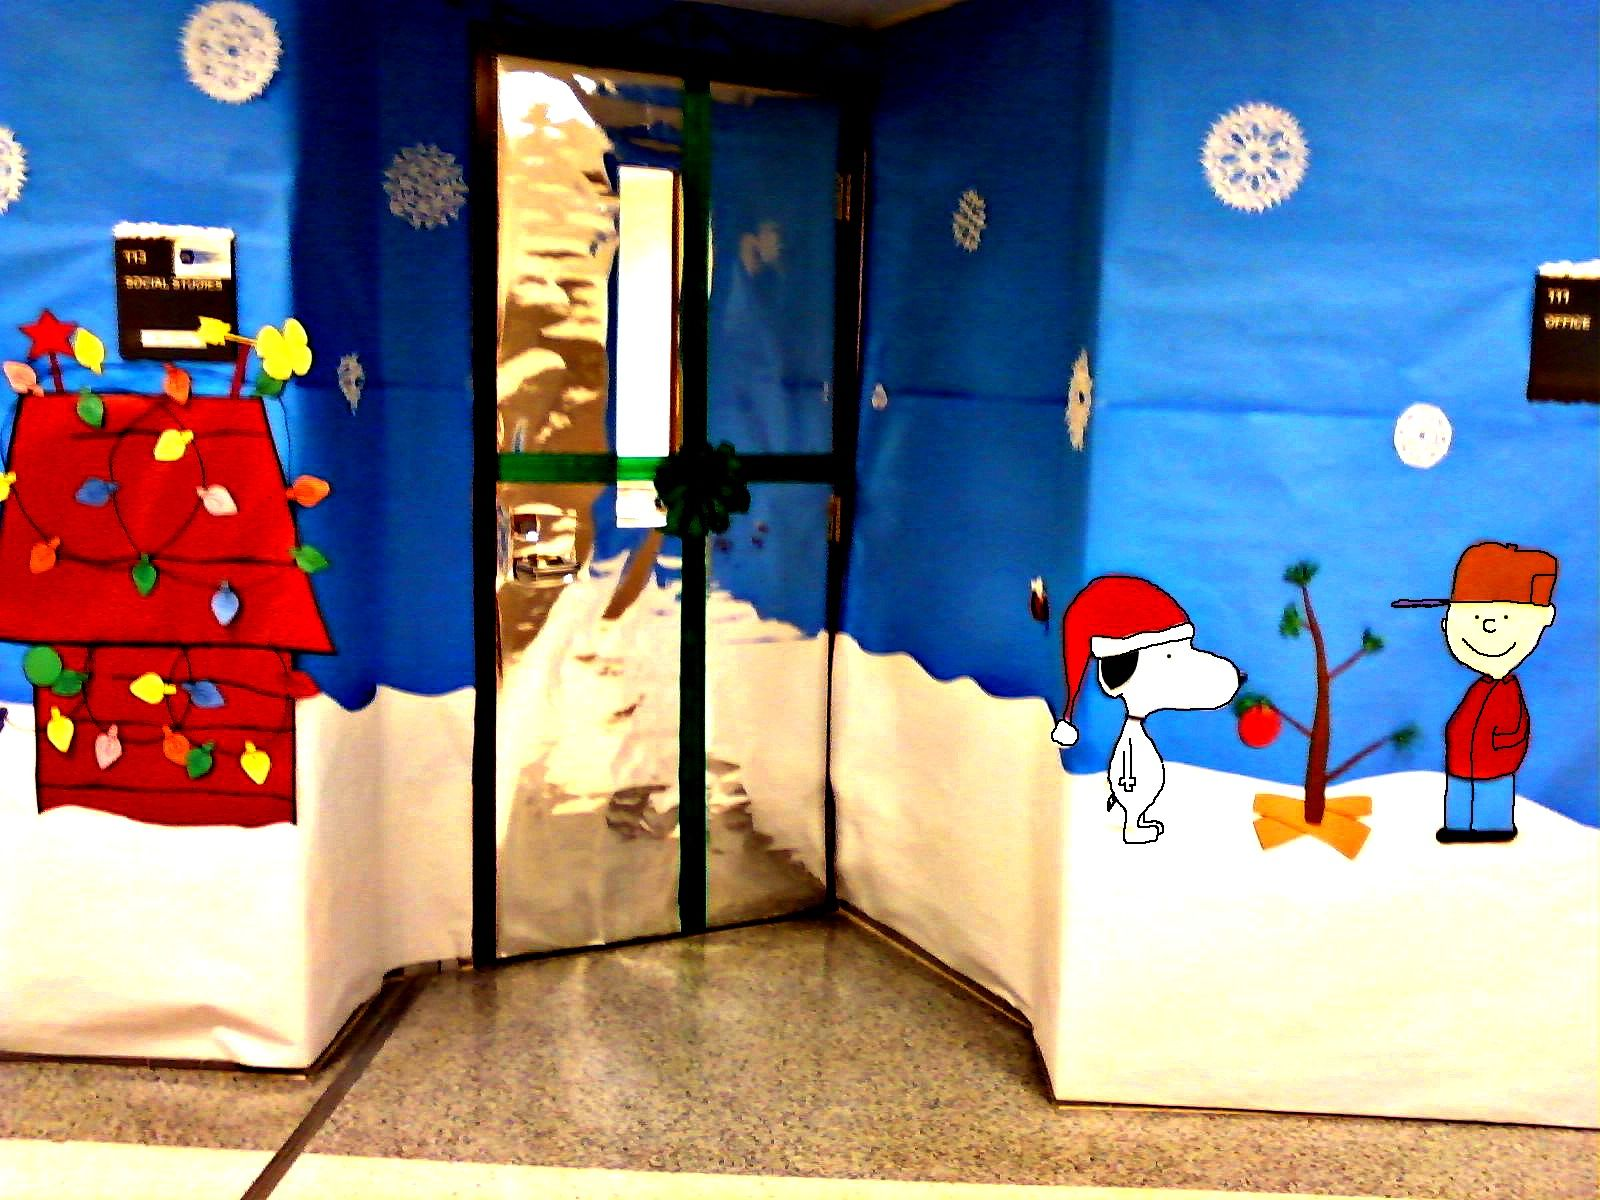 Office cubicle christmas decorating contest ideas - Christmas Door Decorating Contest